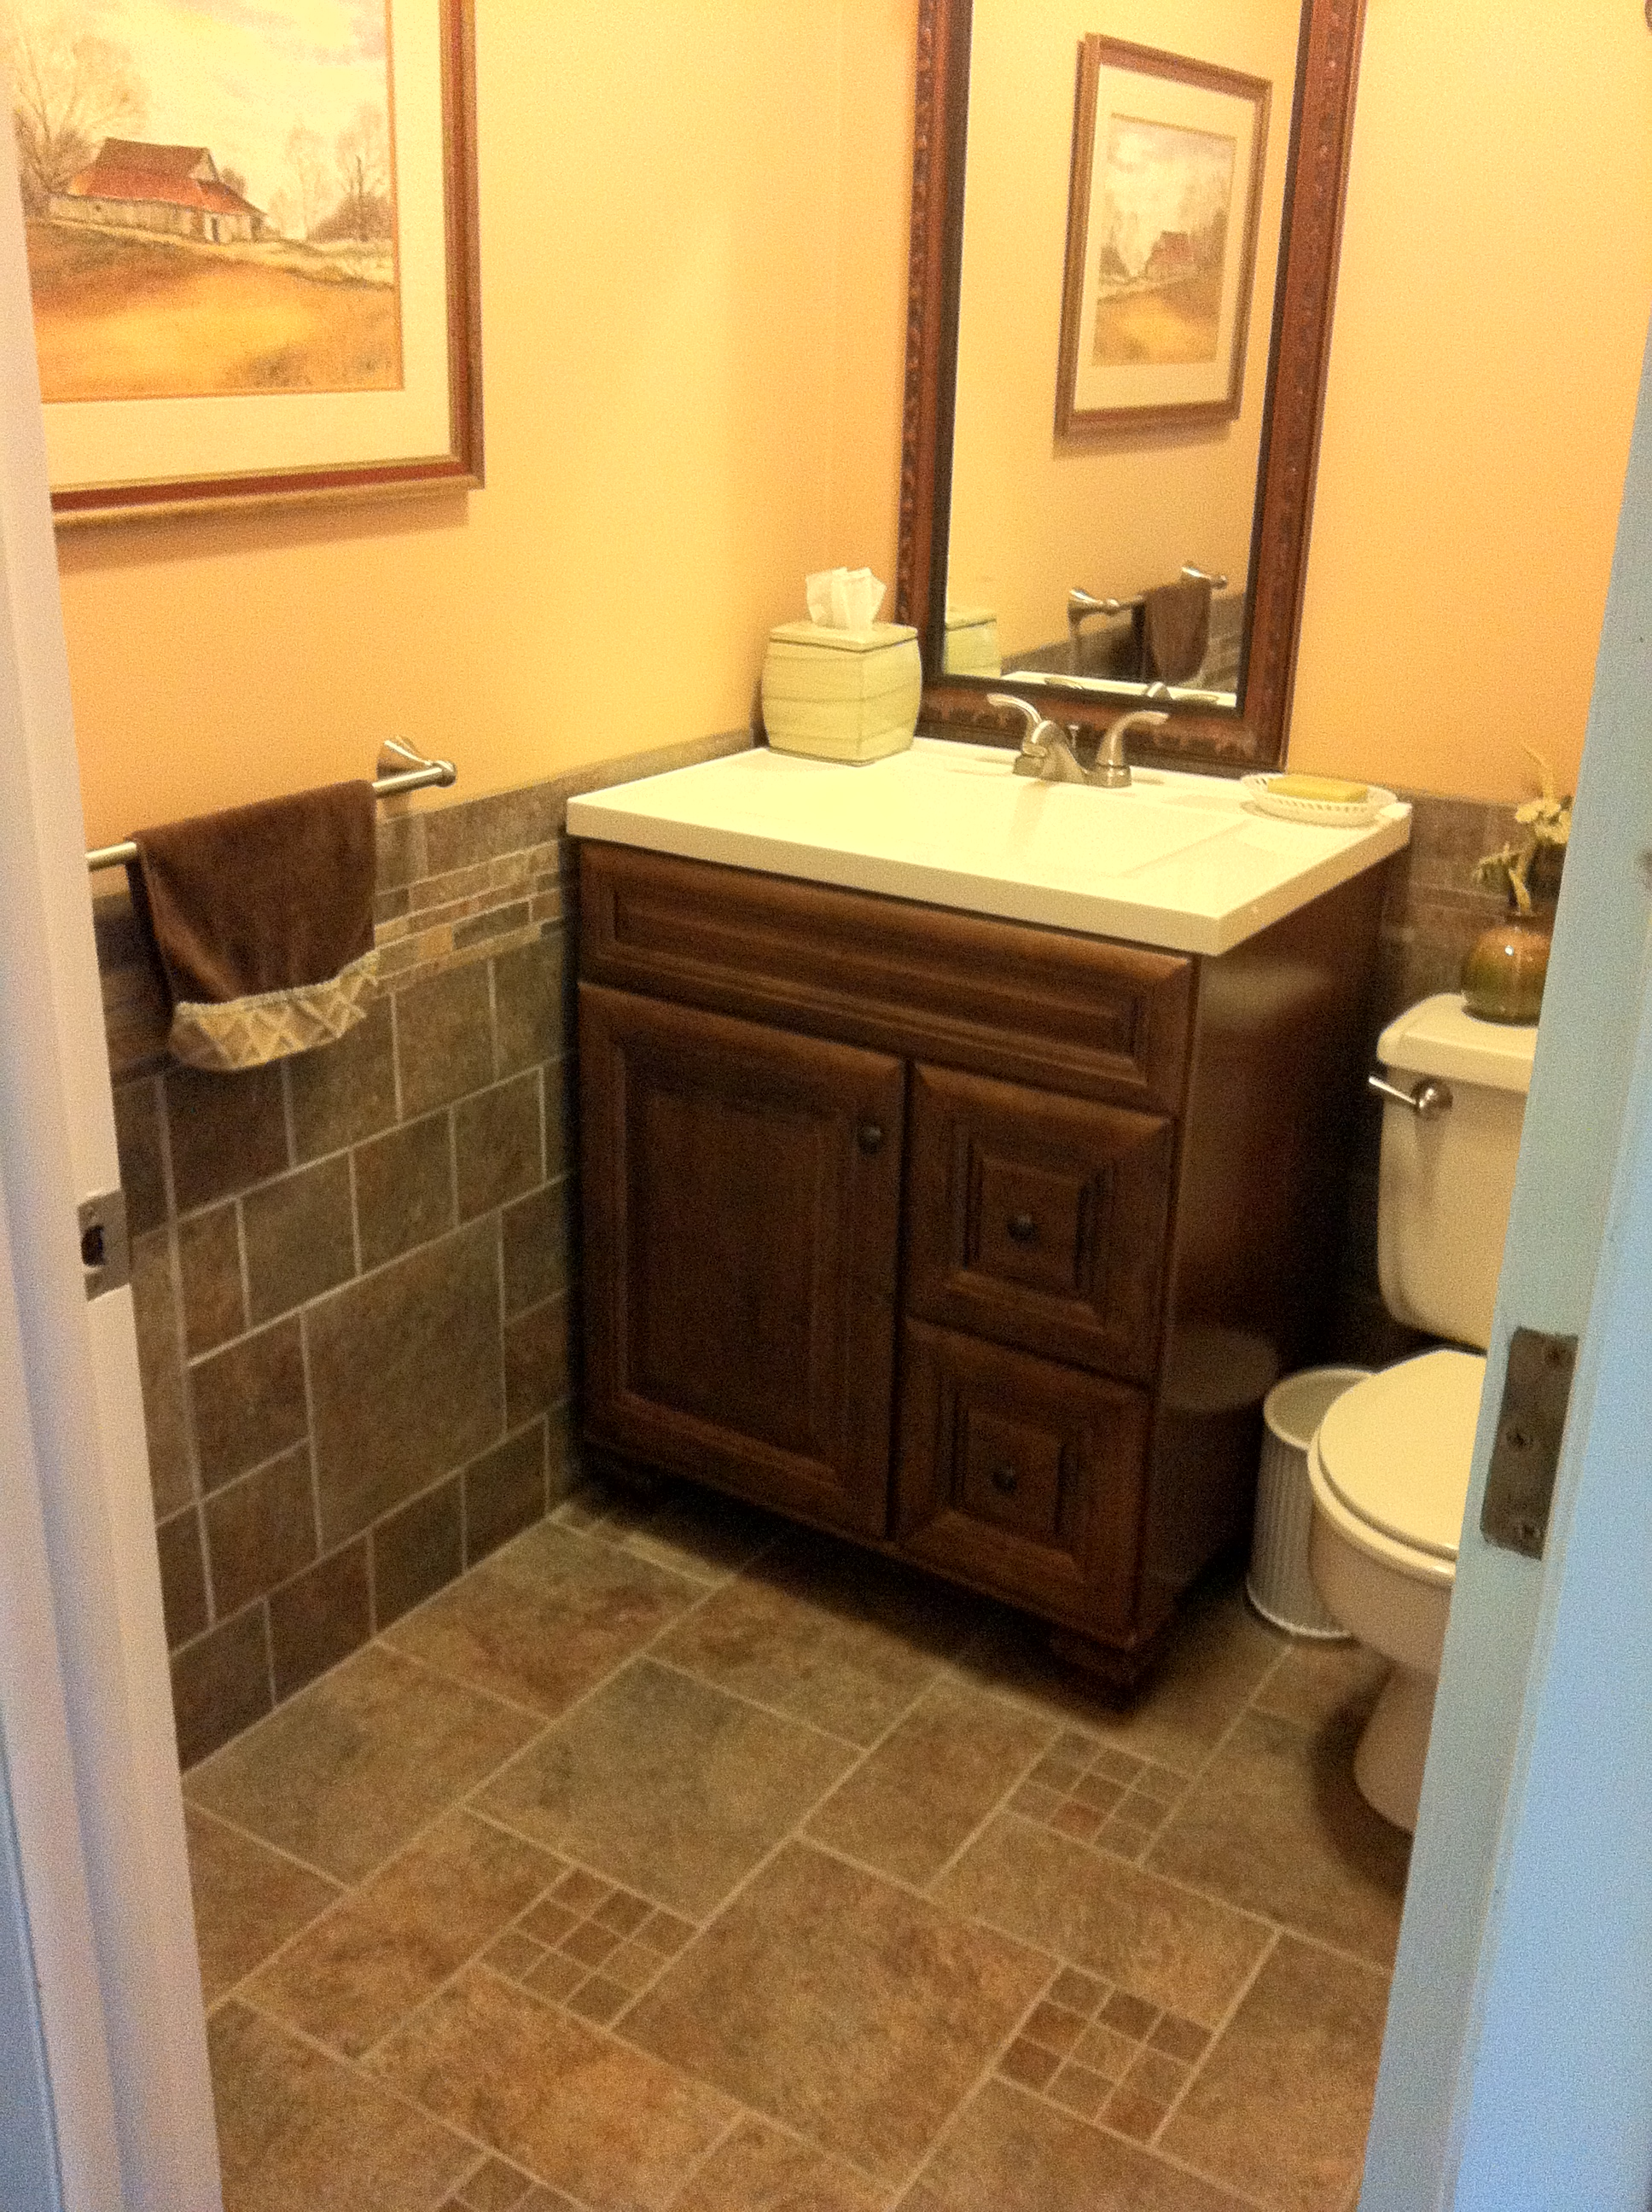 Simpson Construction Services Carmel IN YPcom - Gary's handyman and bathroom remodeling